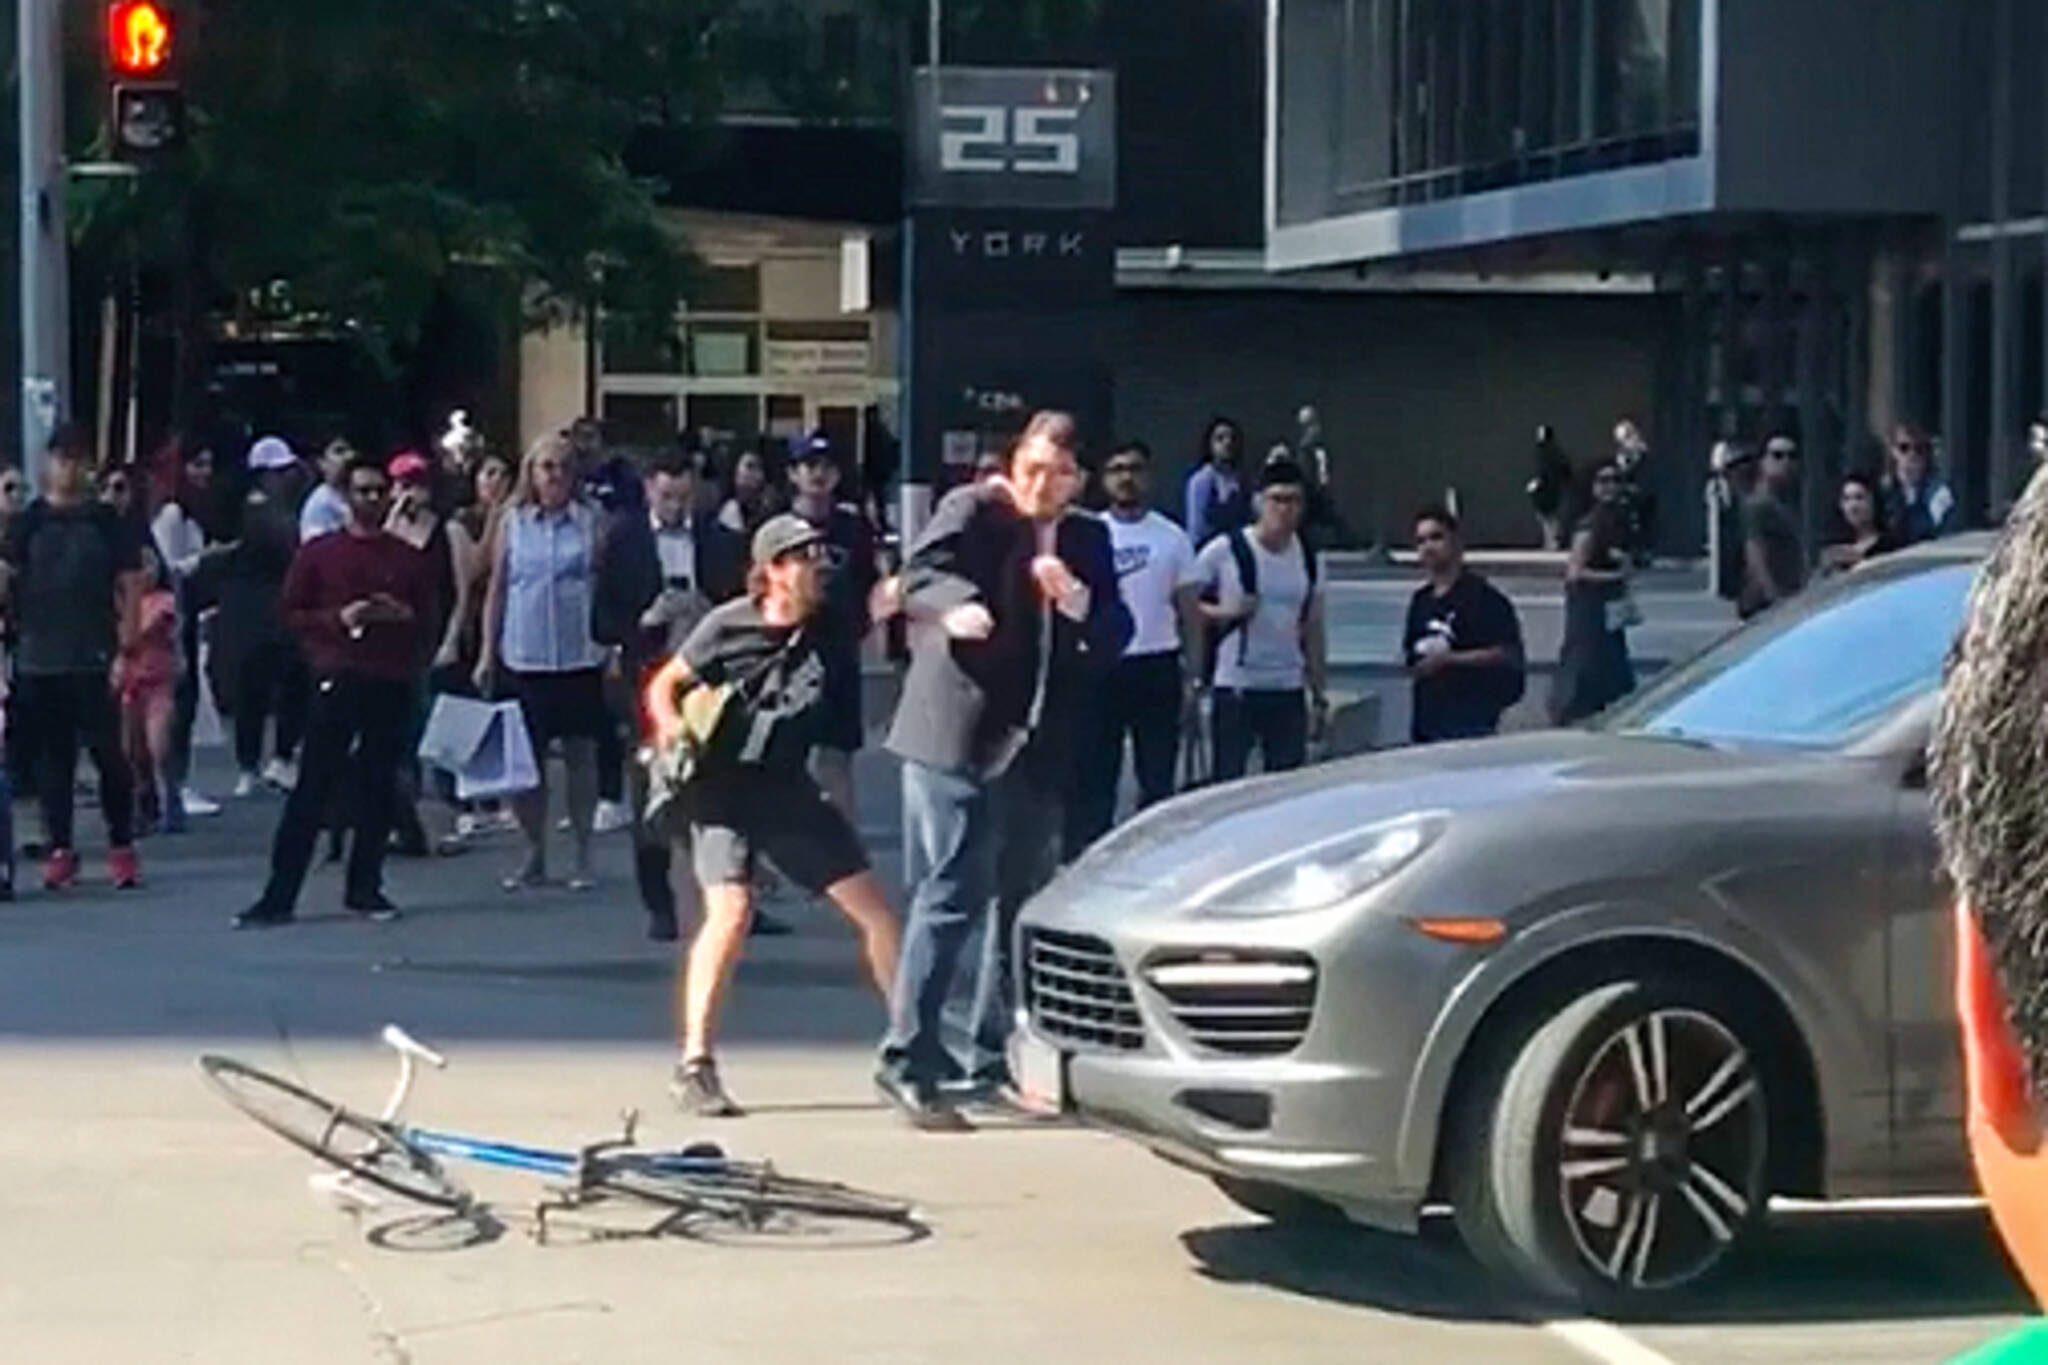 toronto fight video